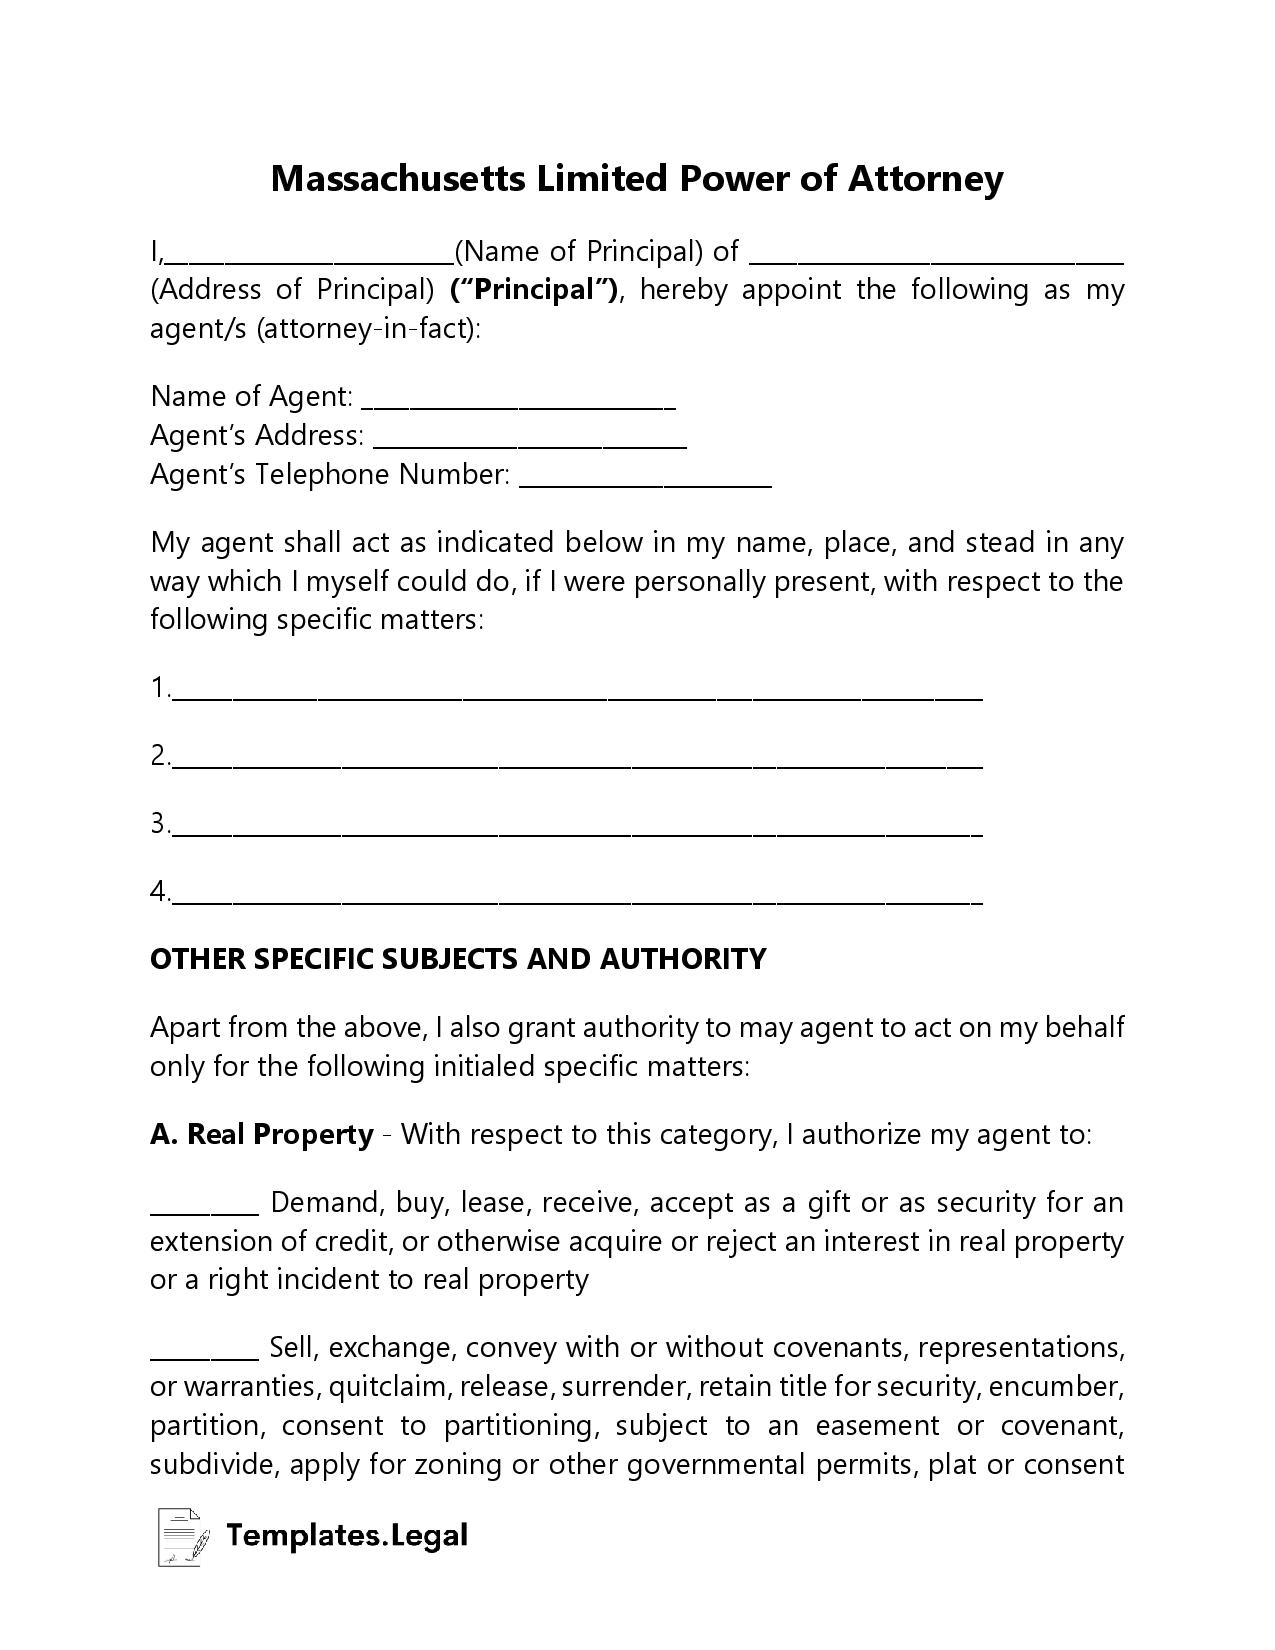 Massachusetts Limited Power of Attorney - Templates.Legal